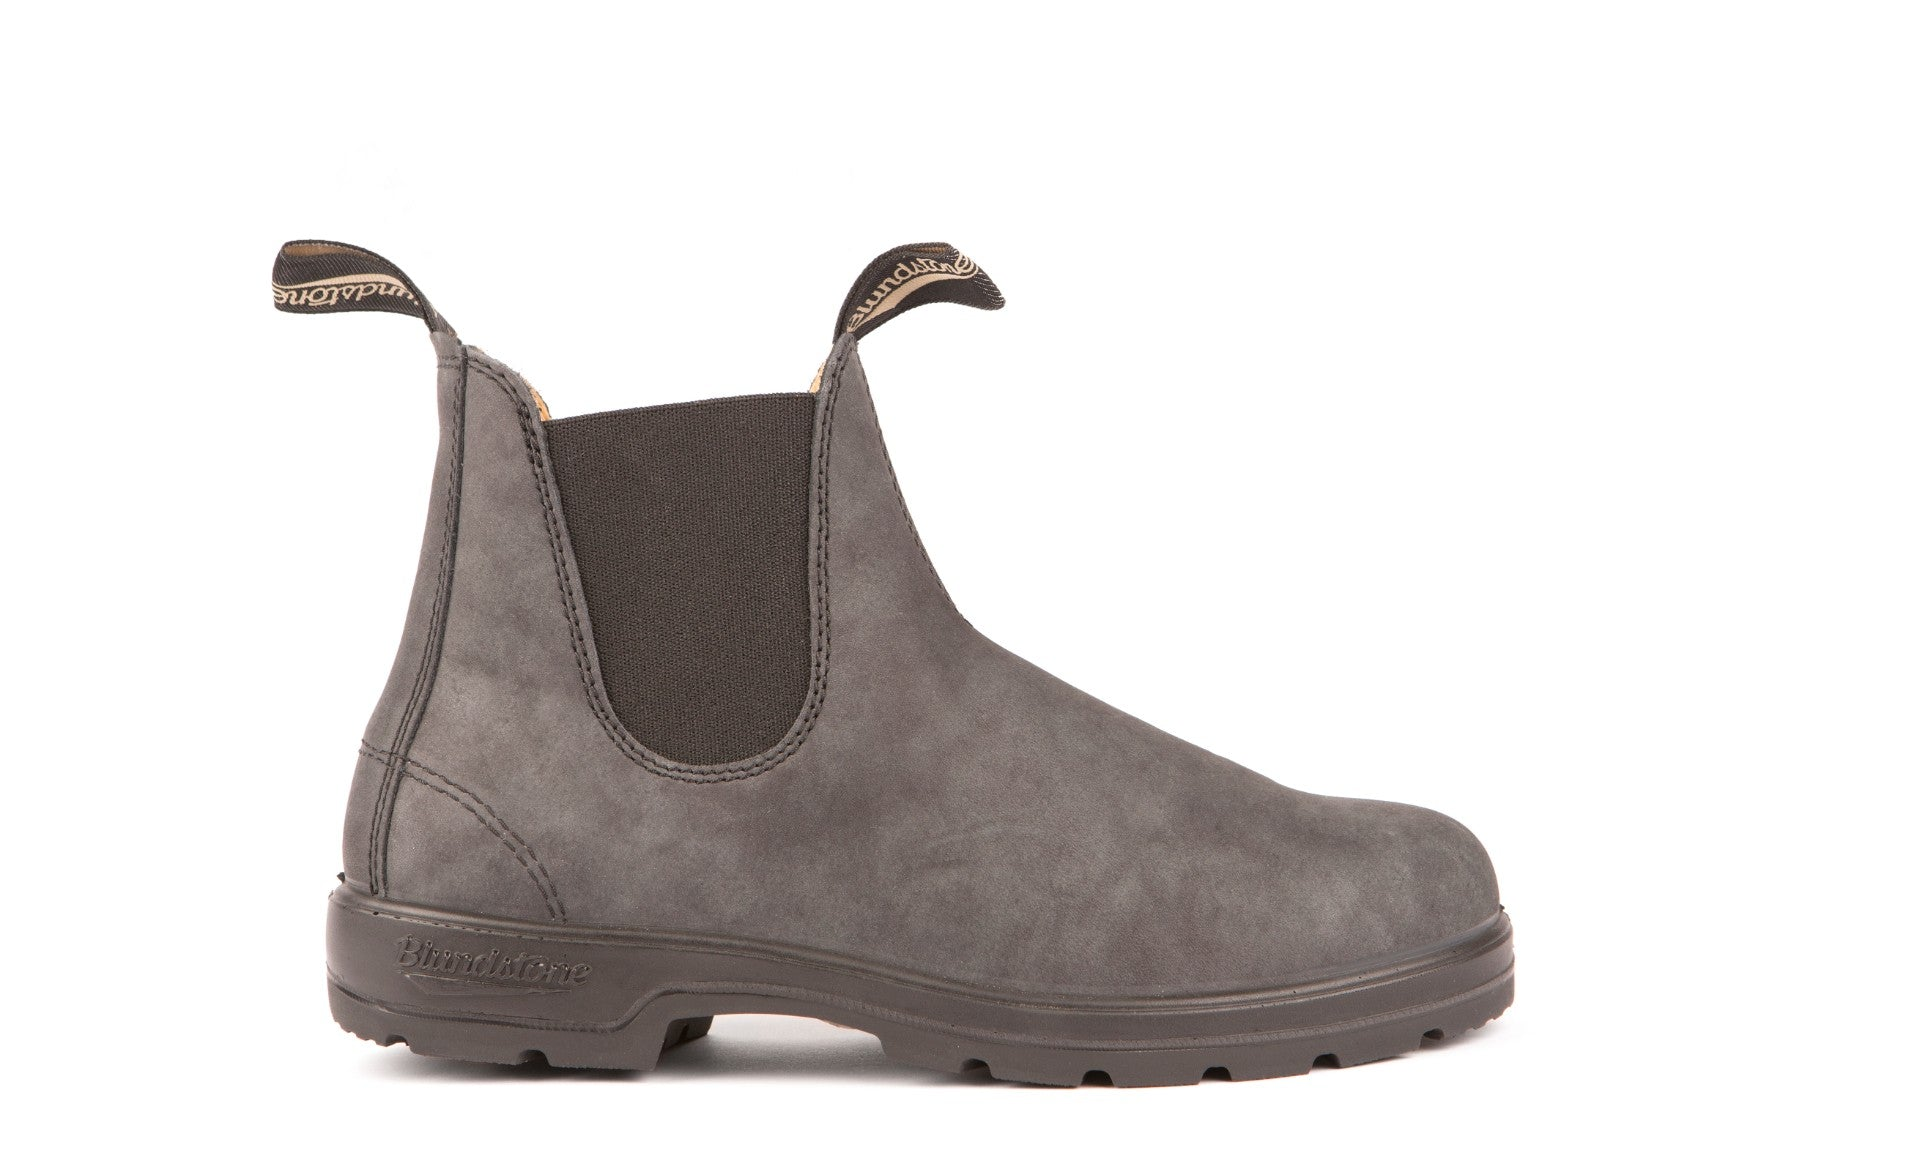 Blundstone Leather Lined Classic Rustic Boot. Thermo-urethane outsole resistant to hydrolysis and microbial attack.